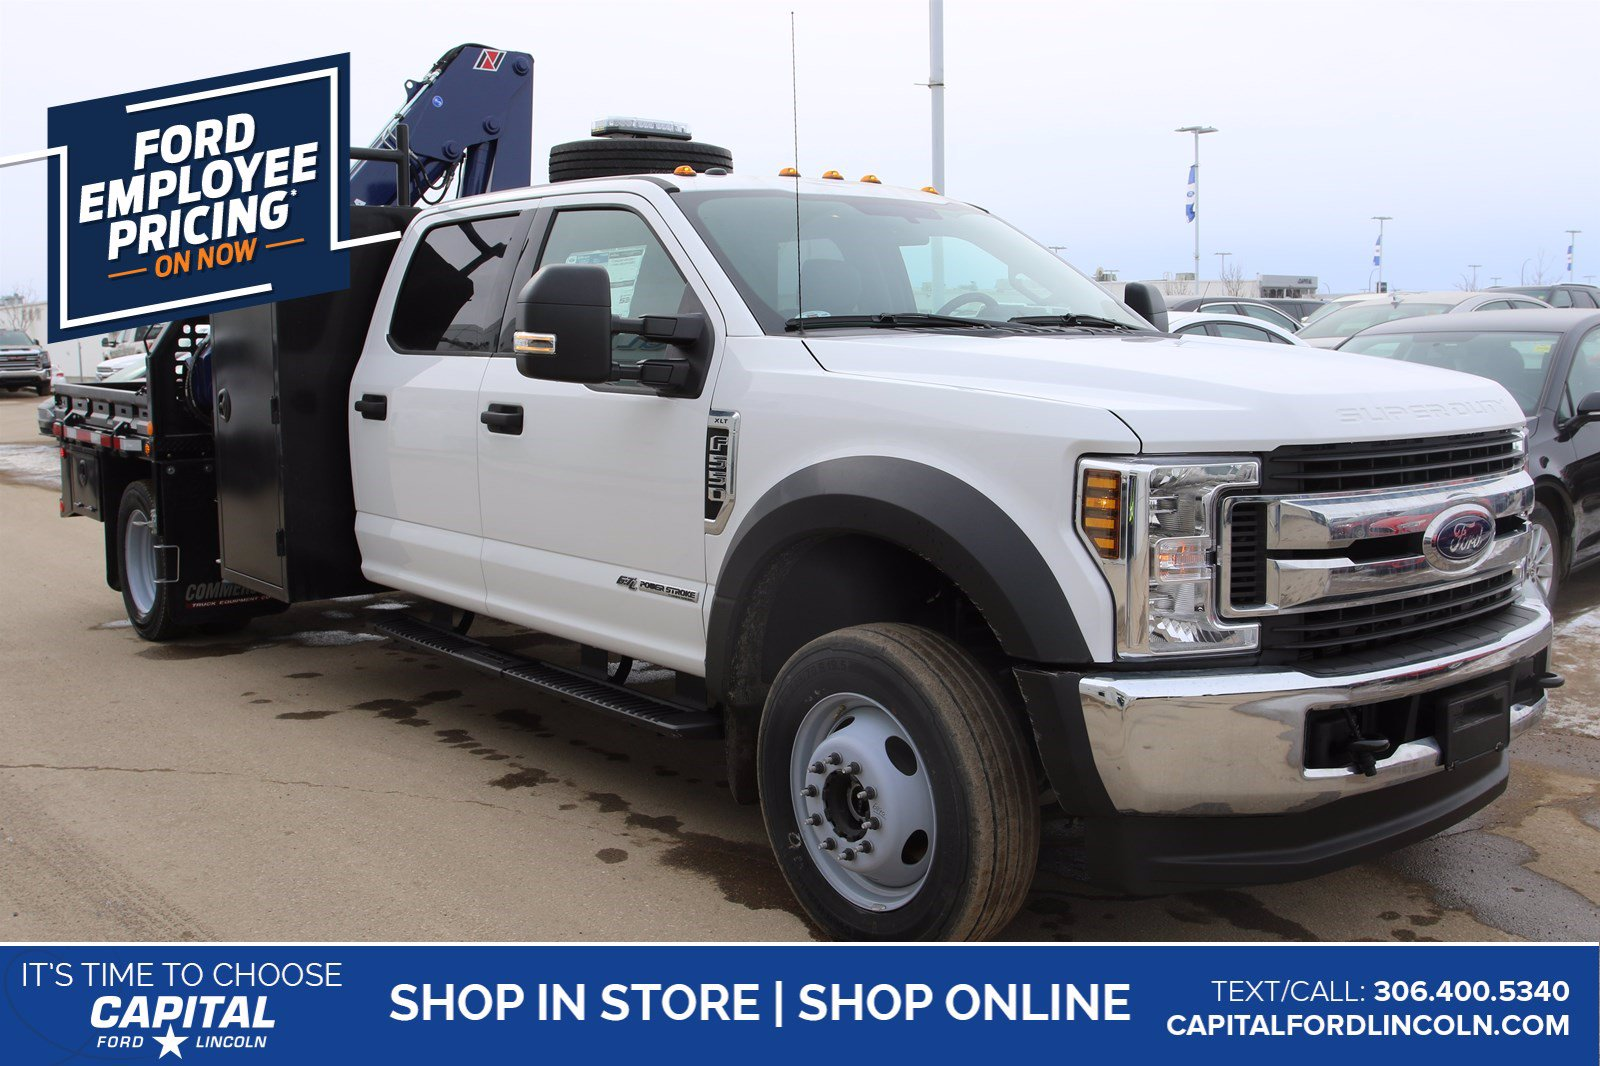 New 2019 Ford F-550 Crew XLT with Deck and Amco Veba Crane